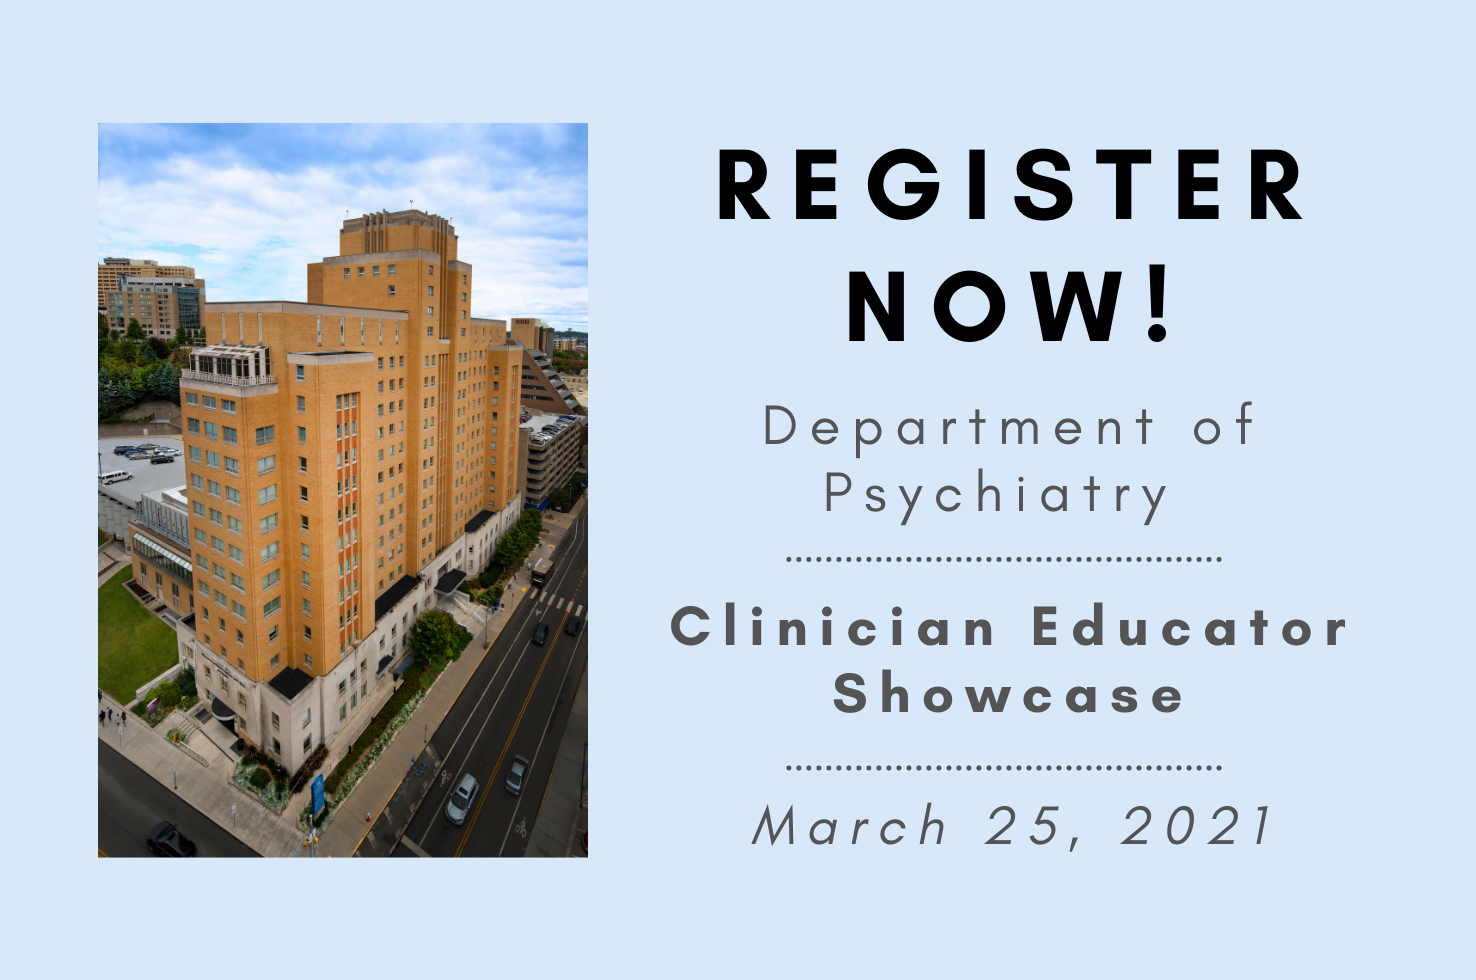 2021 Clinician Educator Showcase